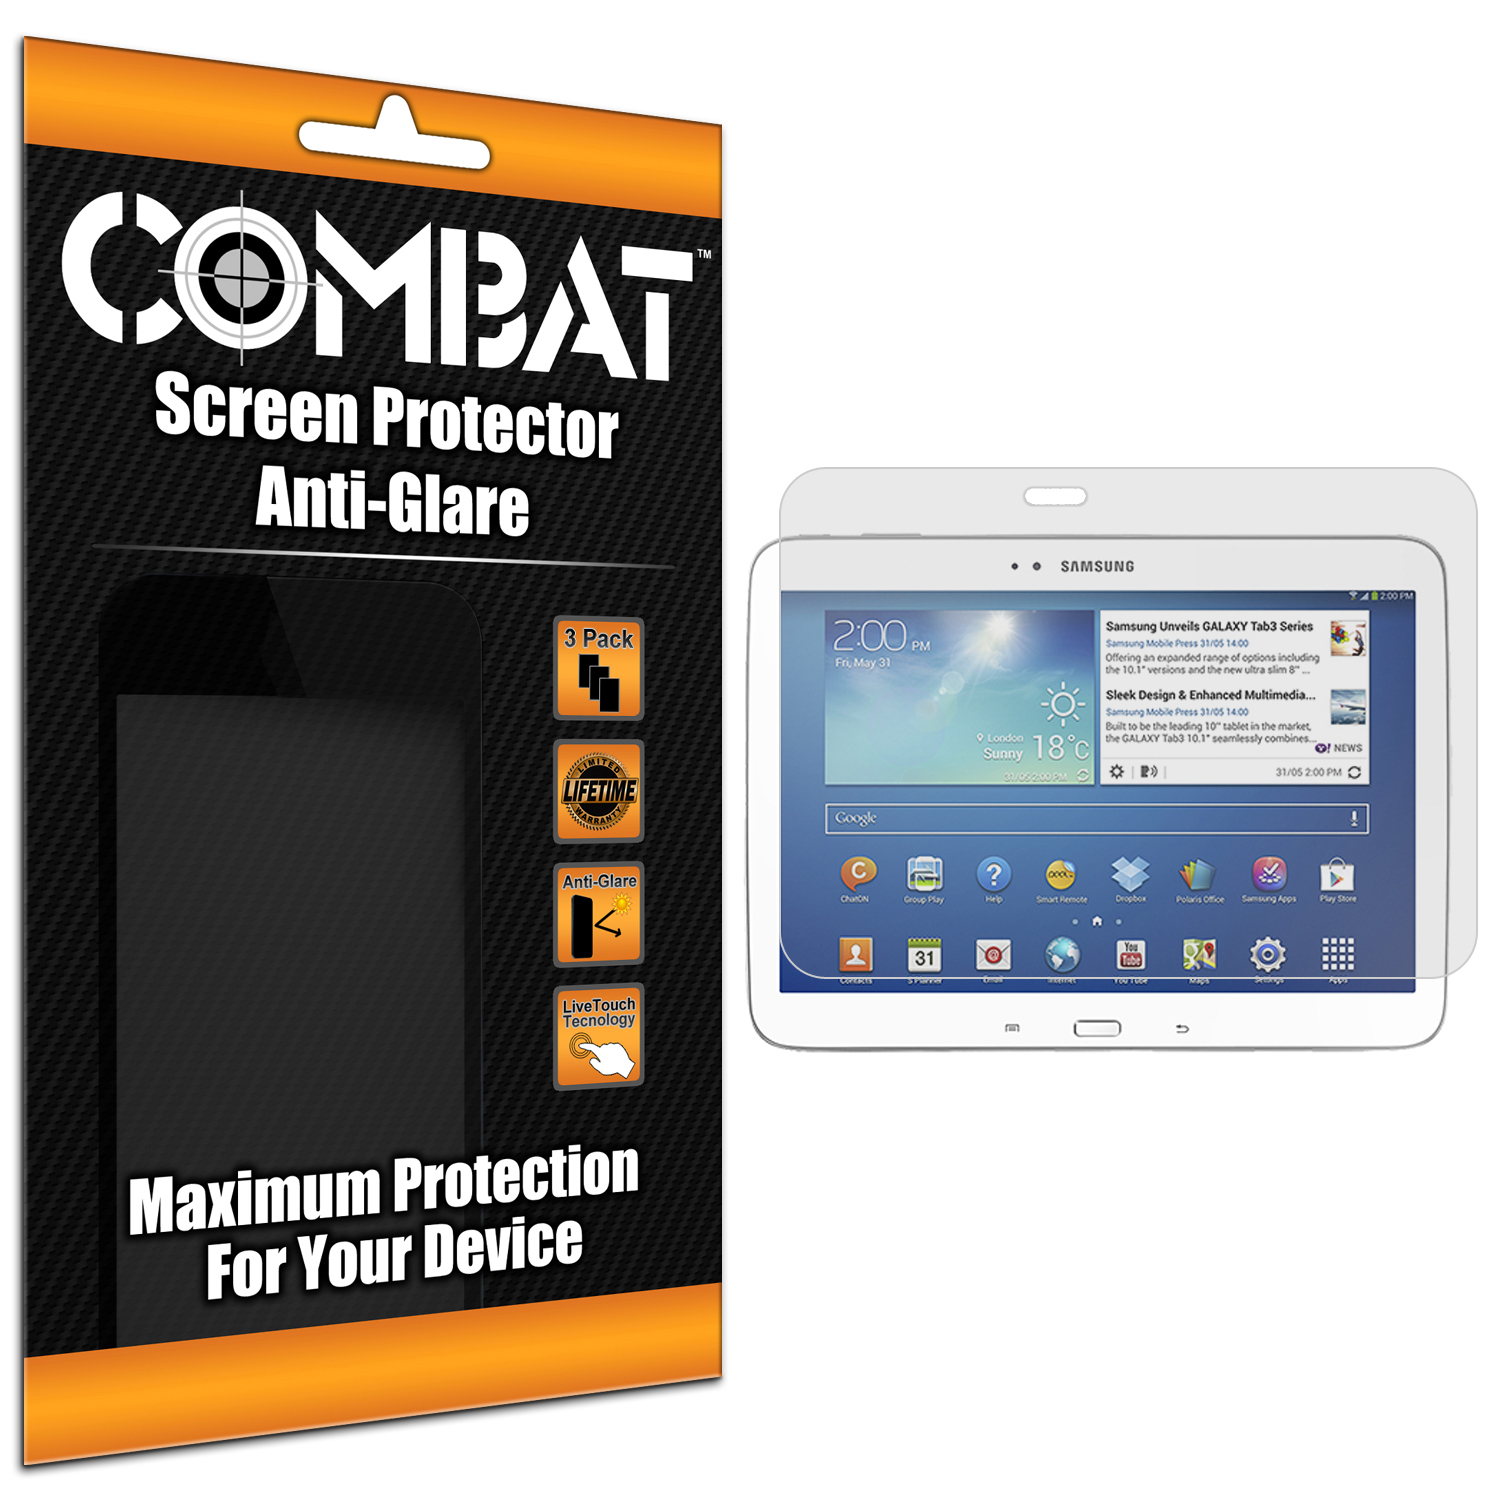 Samsung Galaxy Tab 3 10.1 Combat 3 Pack Anti-Glare Matte Screen Protector